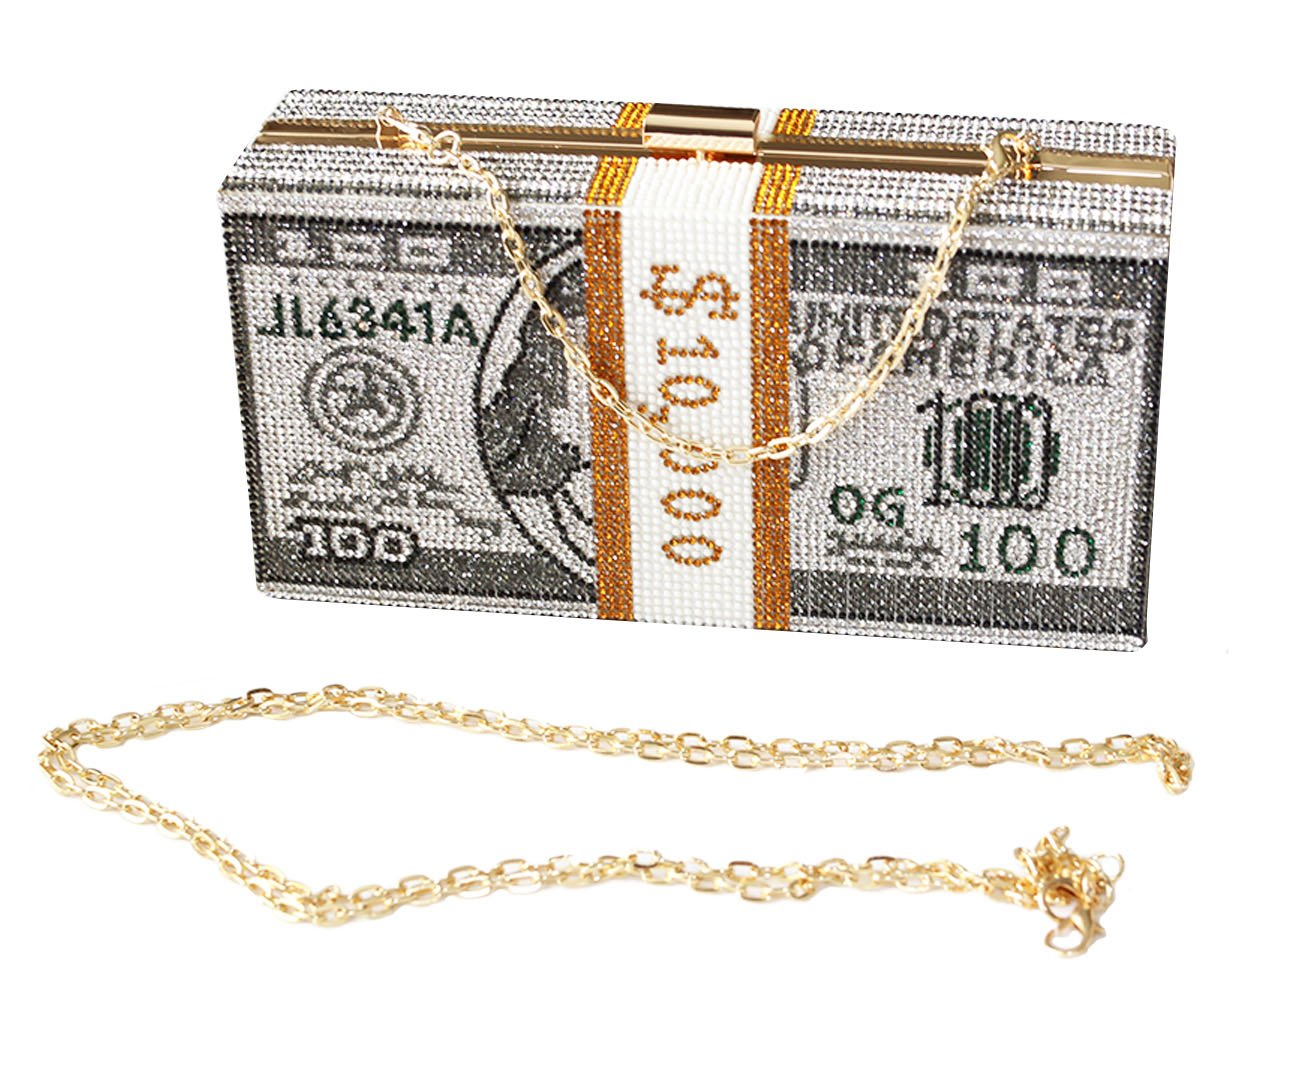 Money Dollar Bill Clutch Purse ,money bill clutch,party accessories, party handbags.fashion bag design,stand out,OOTD,money handbag, ocasional clutch, casual clutch